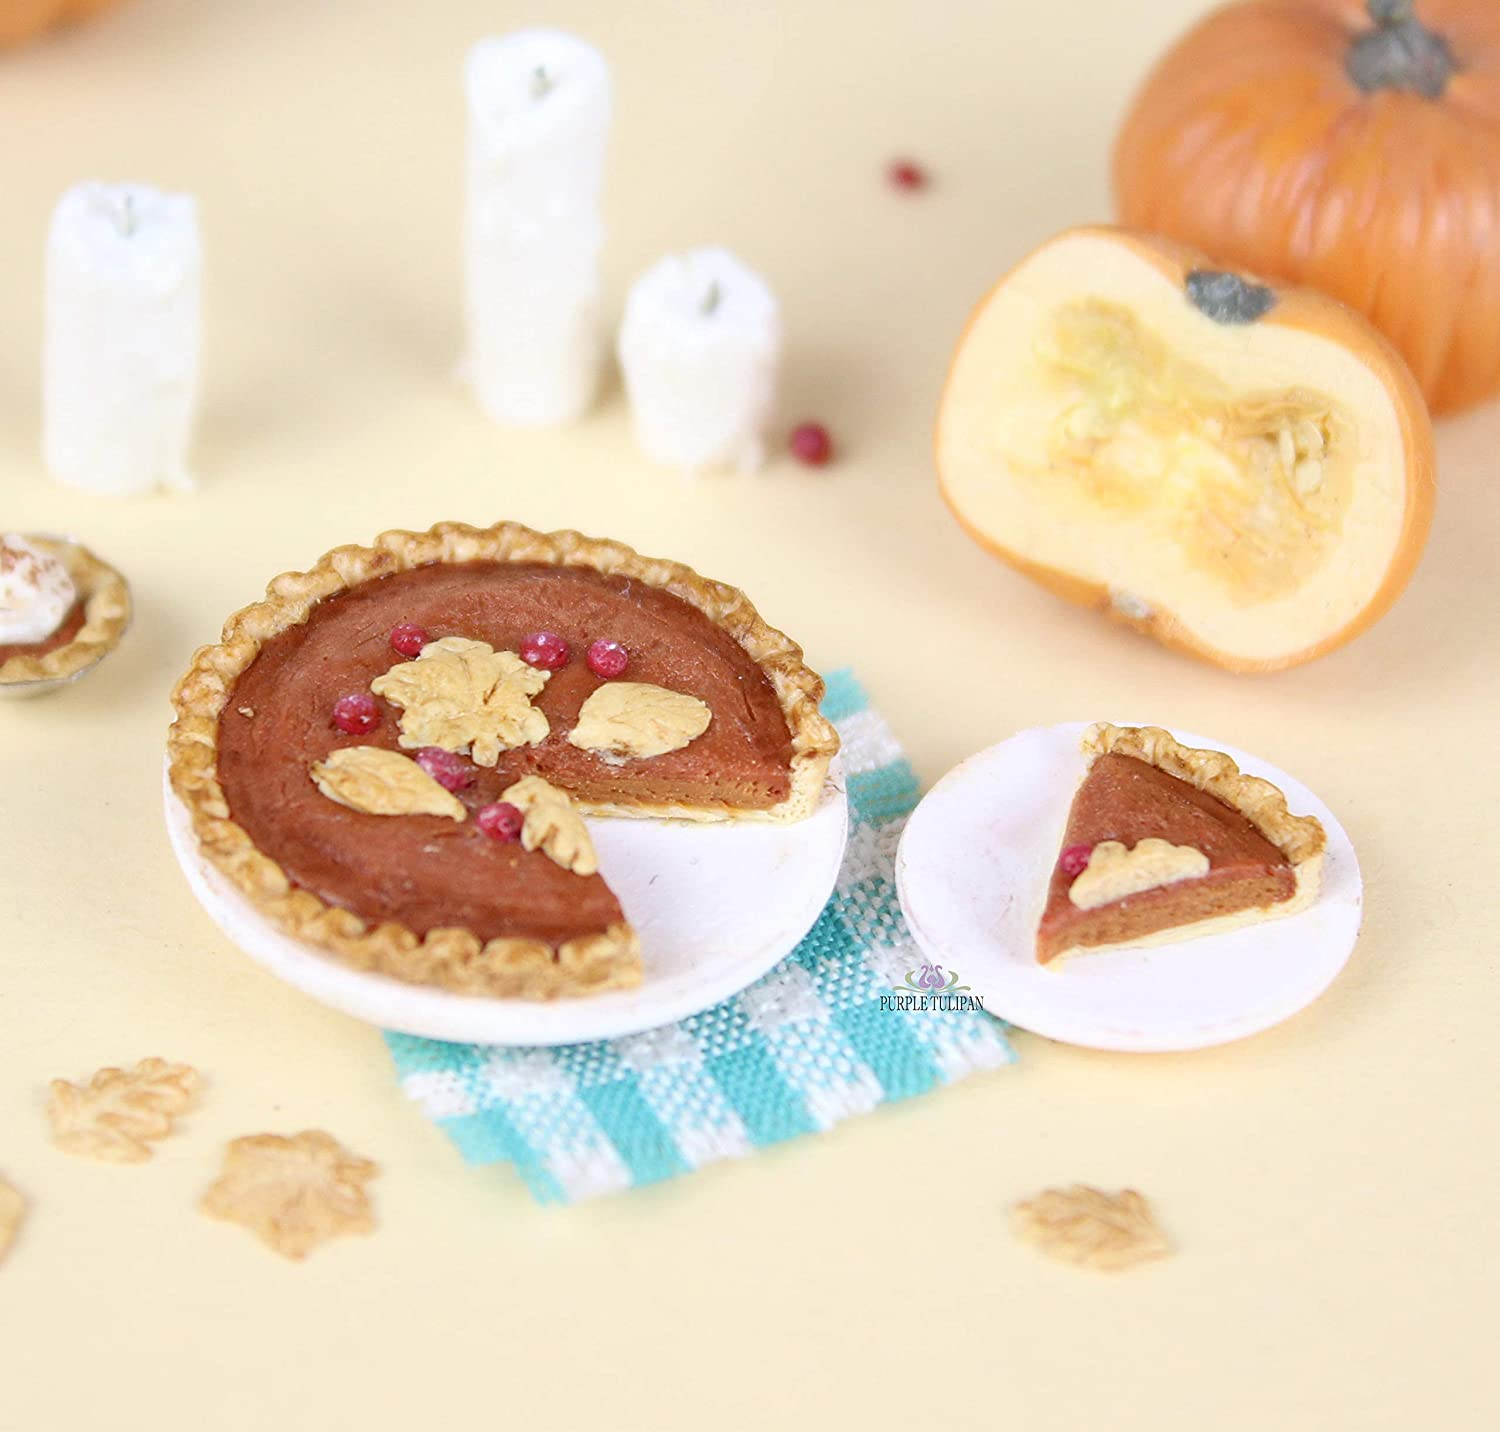 Dollhouse Miniature size  2 Slices of Pumpkin Pie on a Plate With Whipped Cream